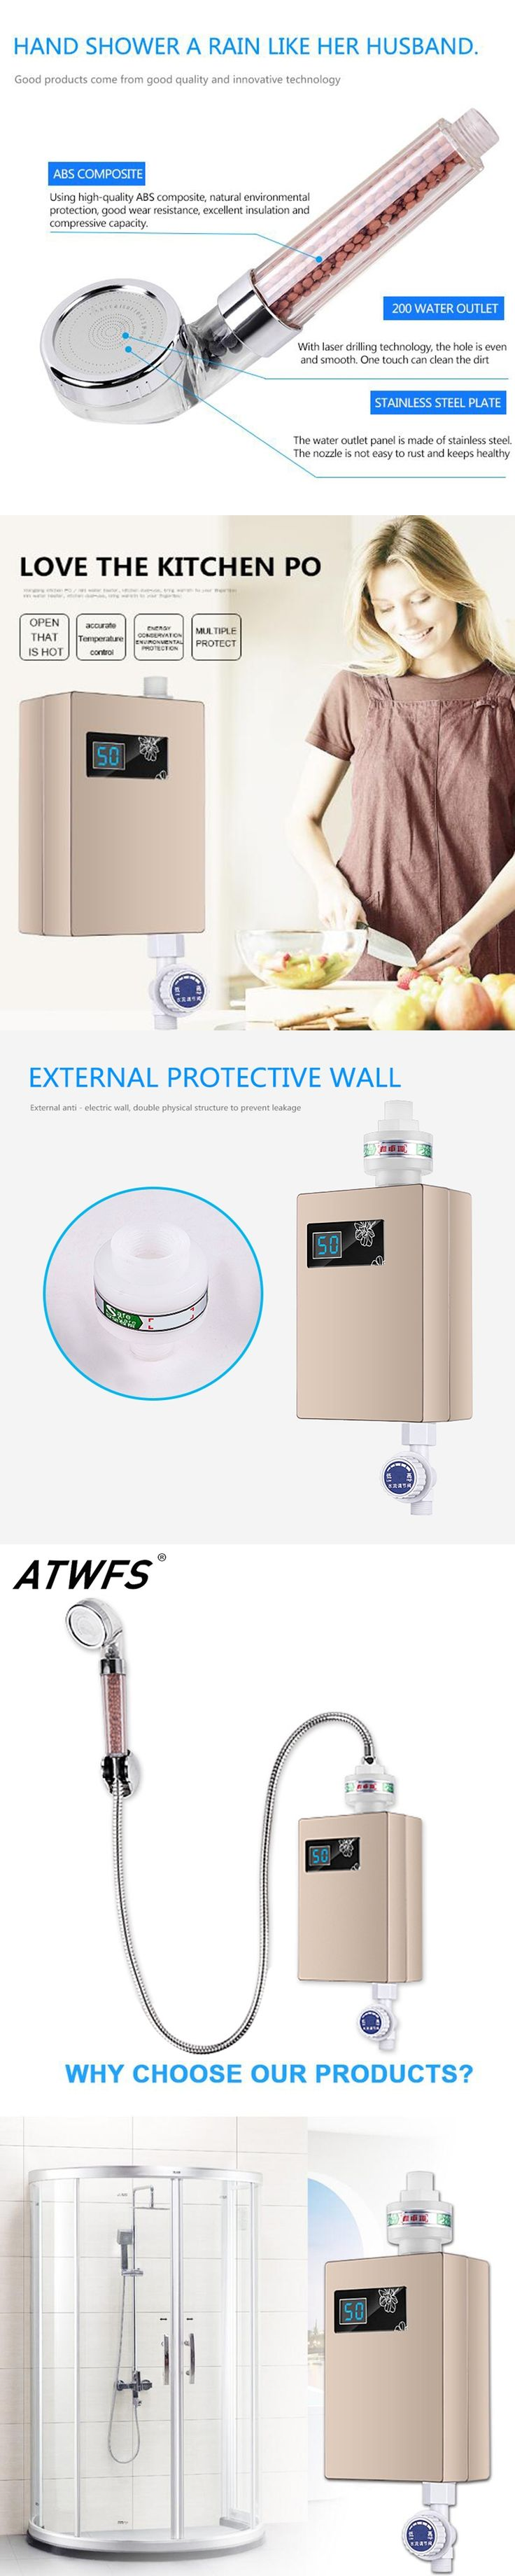 49228eb581dcc1060569c42d574a84ba Top Result 53 Best Of Portable Water Tanks Photos 2018 Kdh6